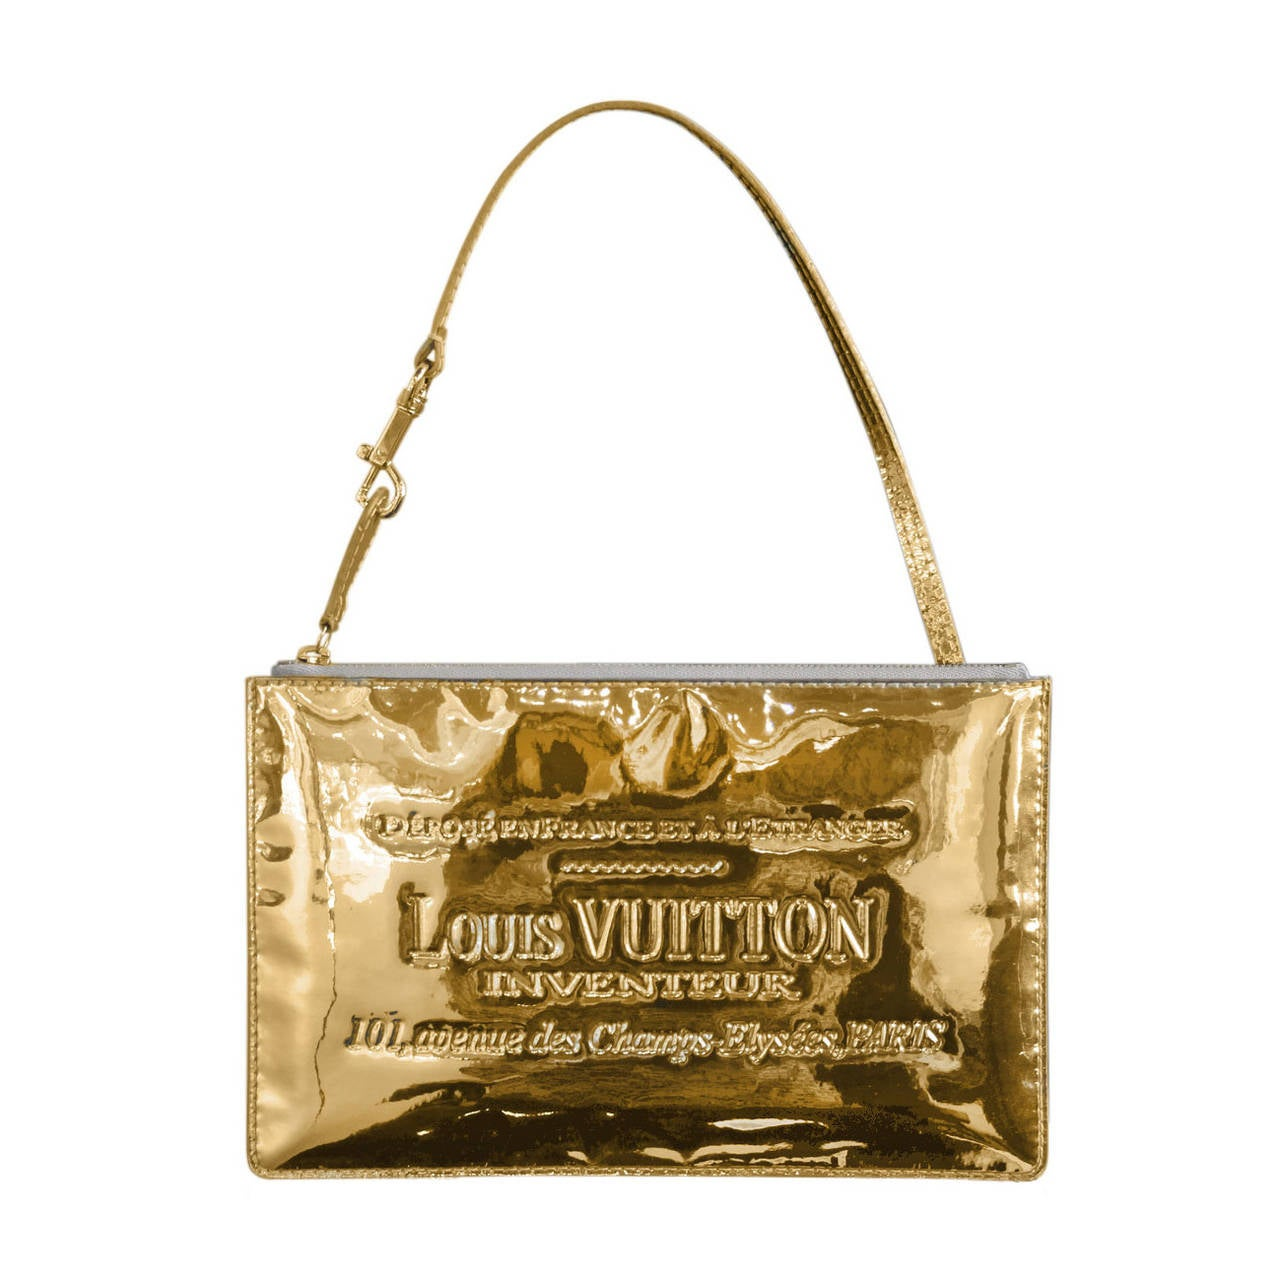 Louis vuitton limited edition gold miroir pochette clutch for Louis vuitton miroir bags